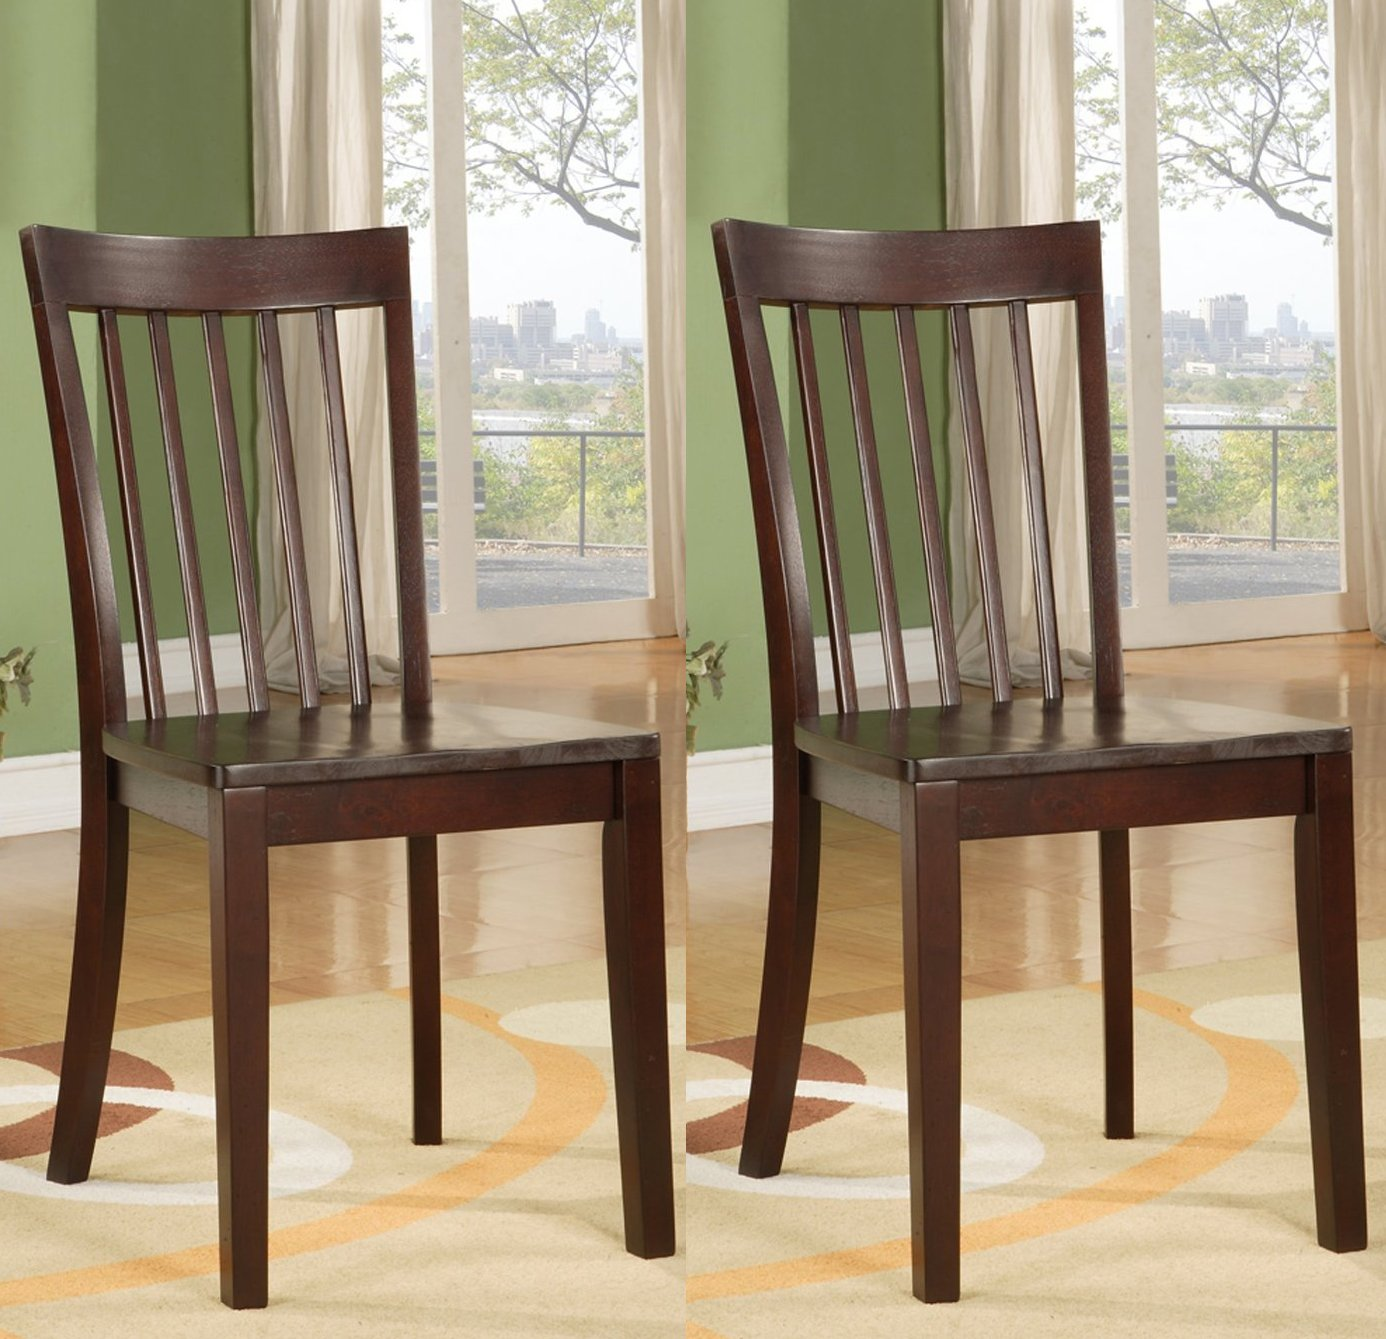 Set 2 heavy duty solid wood cherry finish dining room kitchen side chairs ebay - Wooden dining room chairs ...